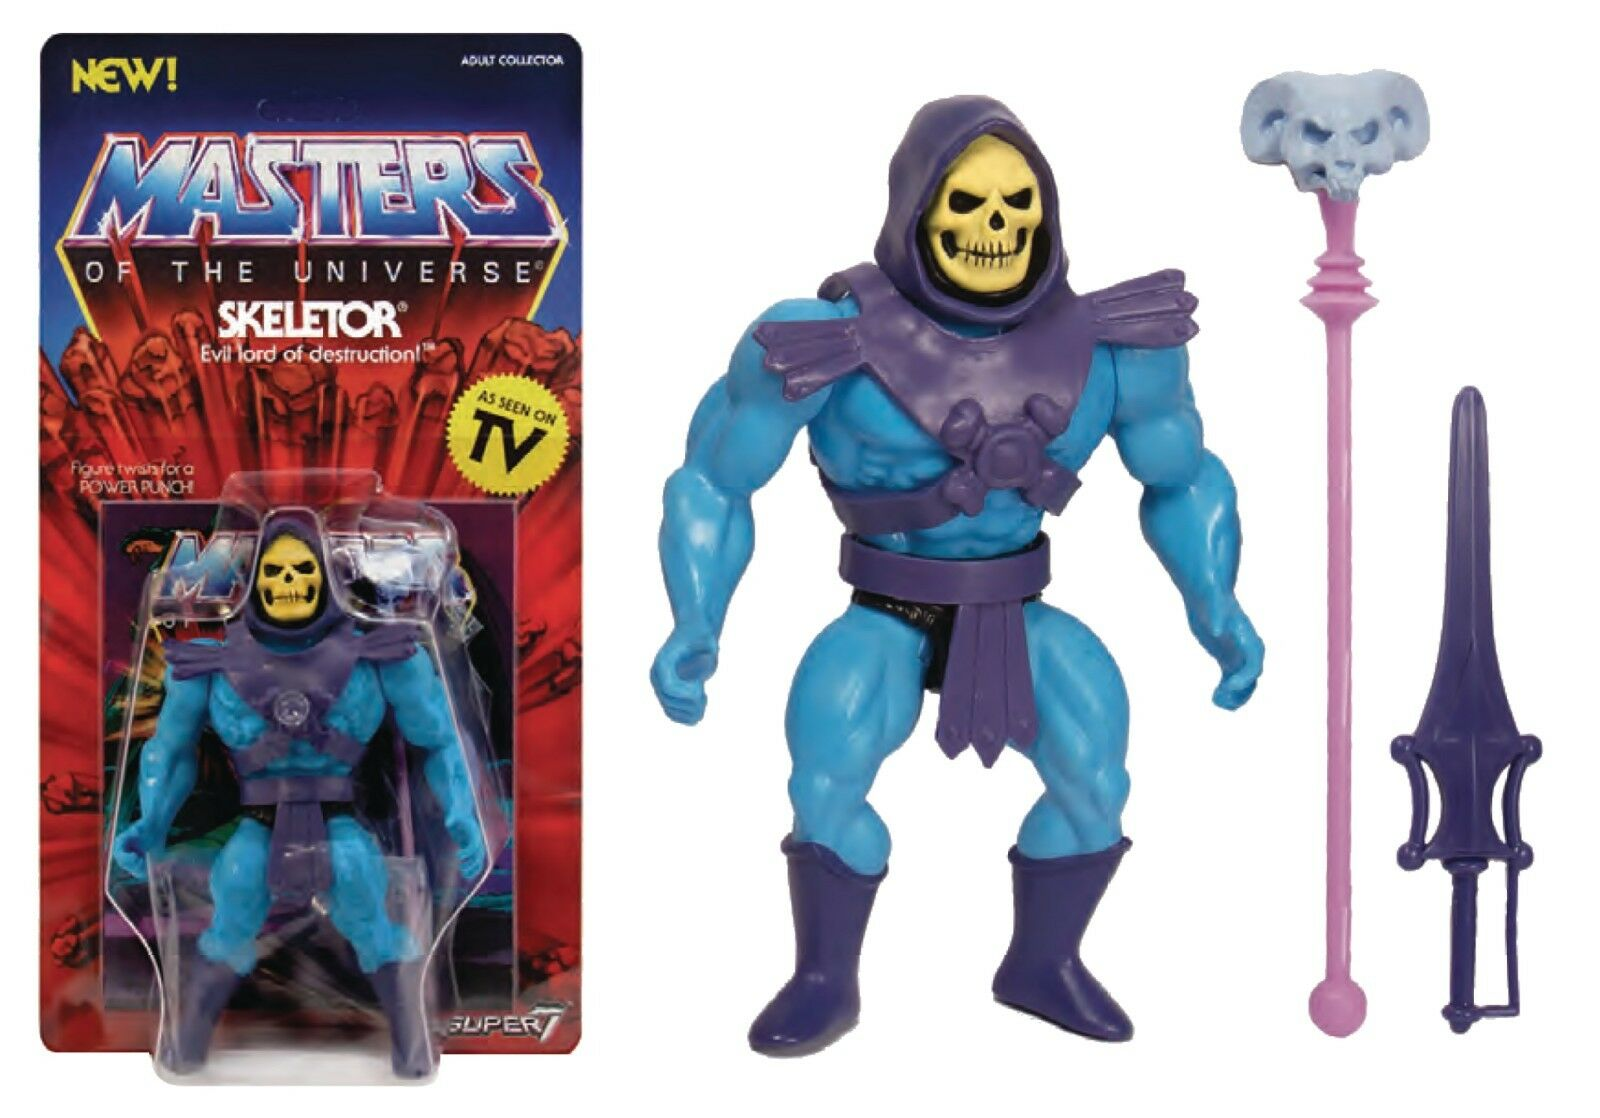 He-Man Masters Of The Universe Classics Neo Vintage Super7 Skeletor MISB A